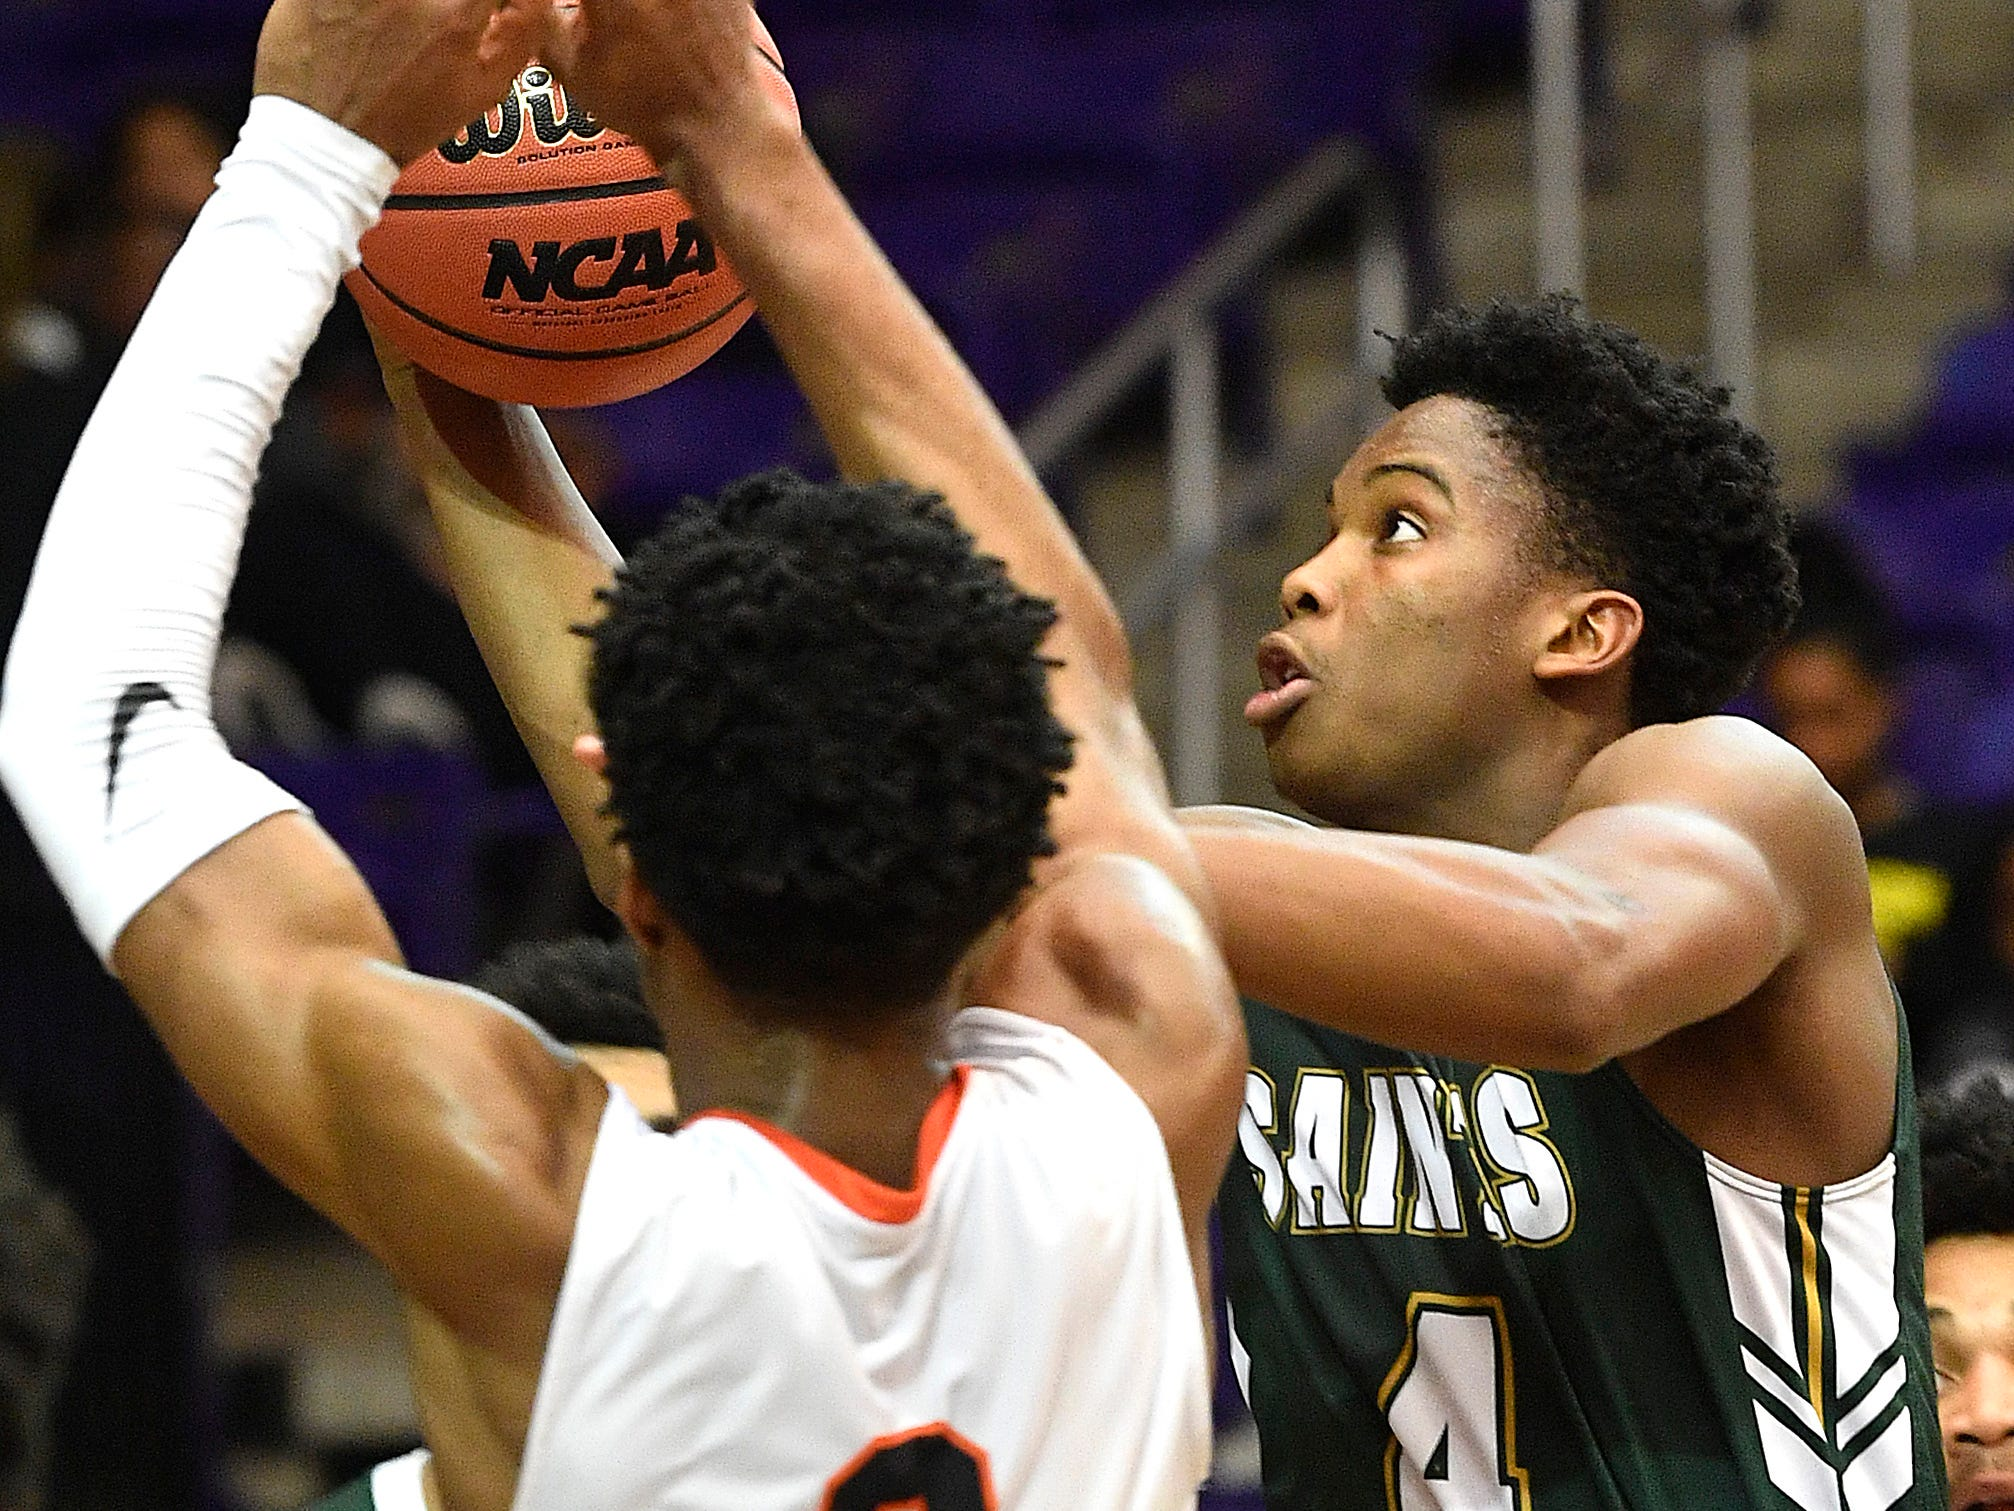 Lewis McDaniel and Marcellus Brigham go for a rebound as Ensworth plays Briarcrest Christian in the Division II- AA semifinals at Allen Arena  Thursday, Feb. 28, 2019, in Nashville, Tenn.